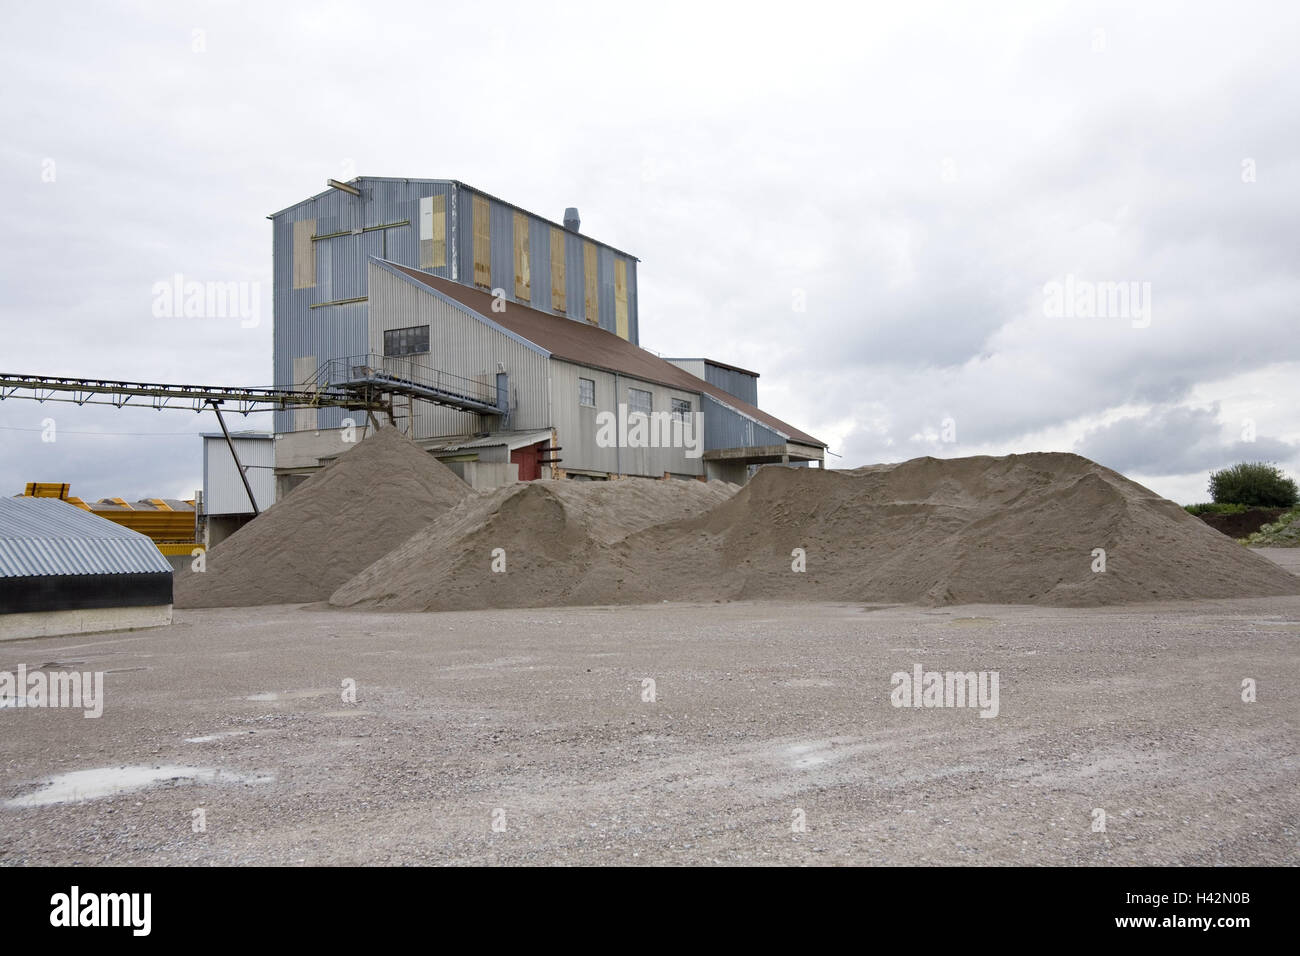 Gravel opus, no property release, Sand company, gravel company, opus, company, factory, quarry, heap, gravel heap, - Stock Image